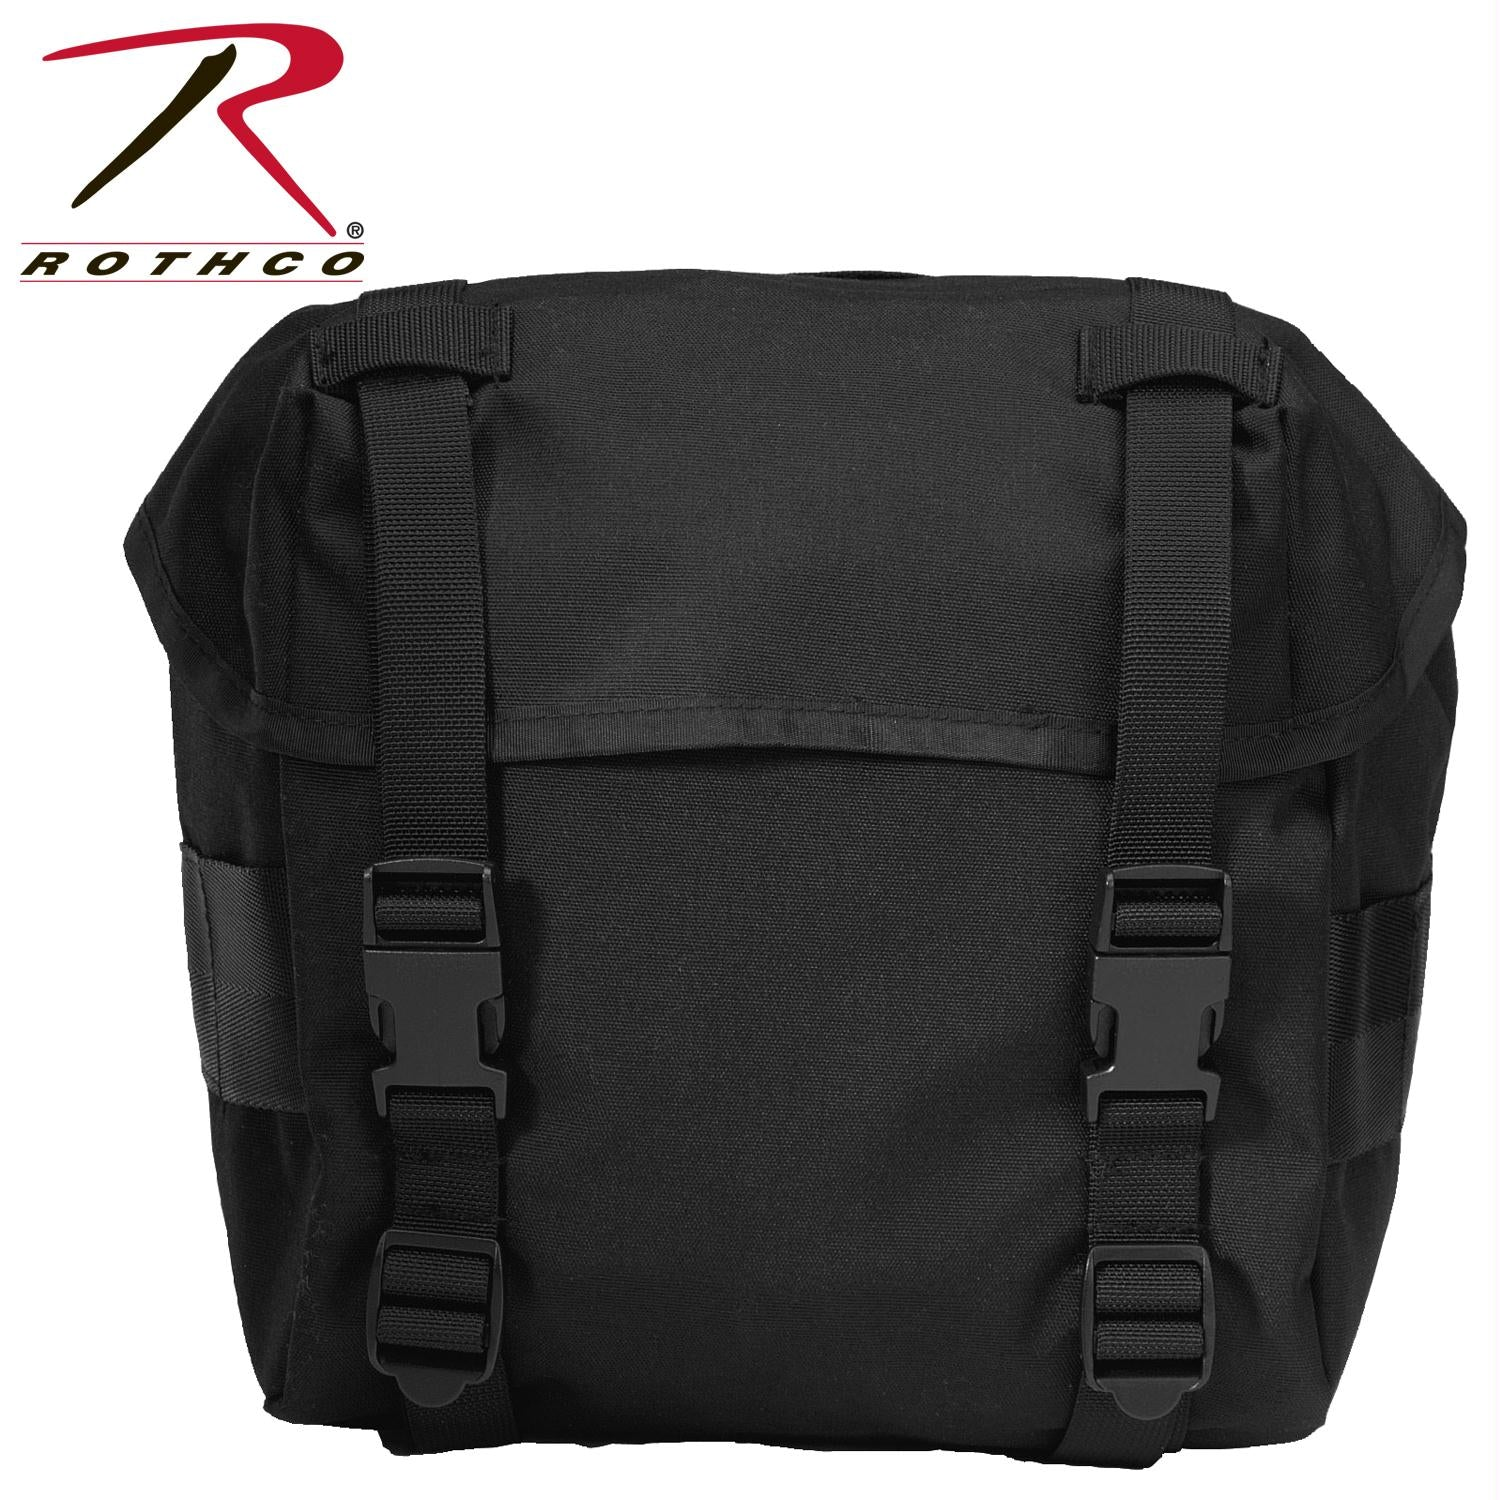 Rothco G.I. Type Enhanced Butt Packs - Black